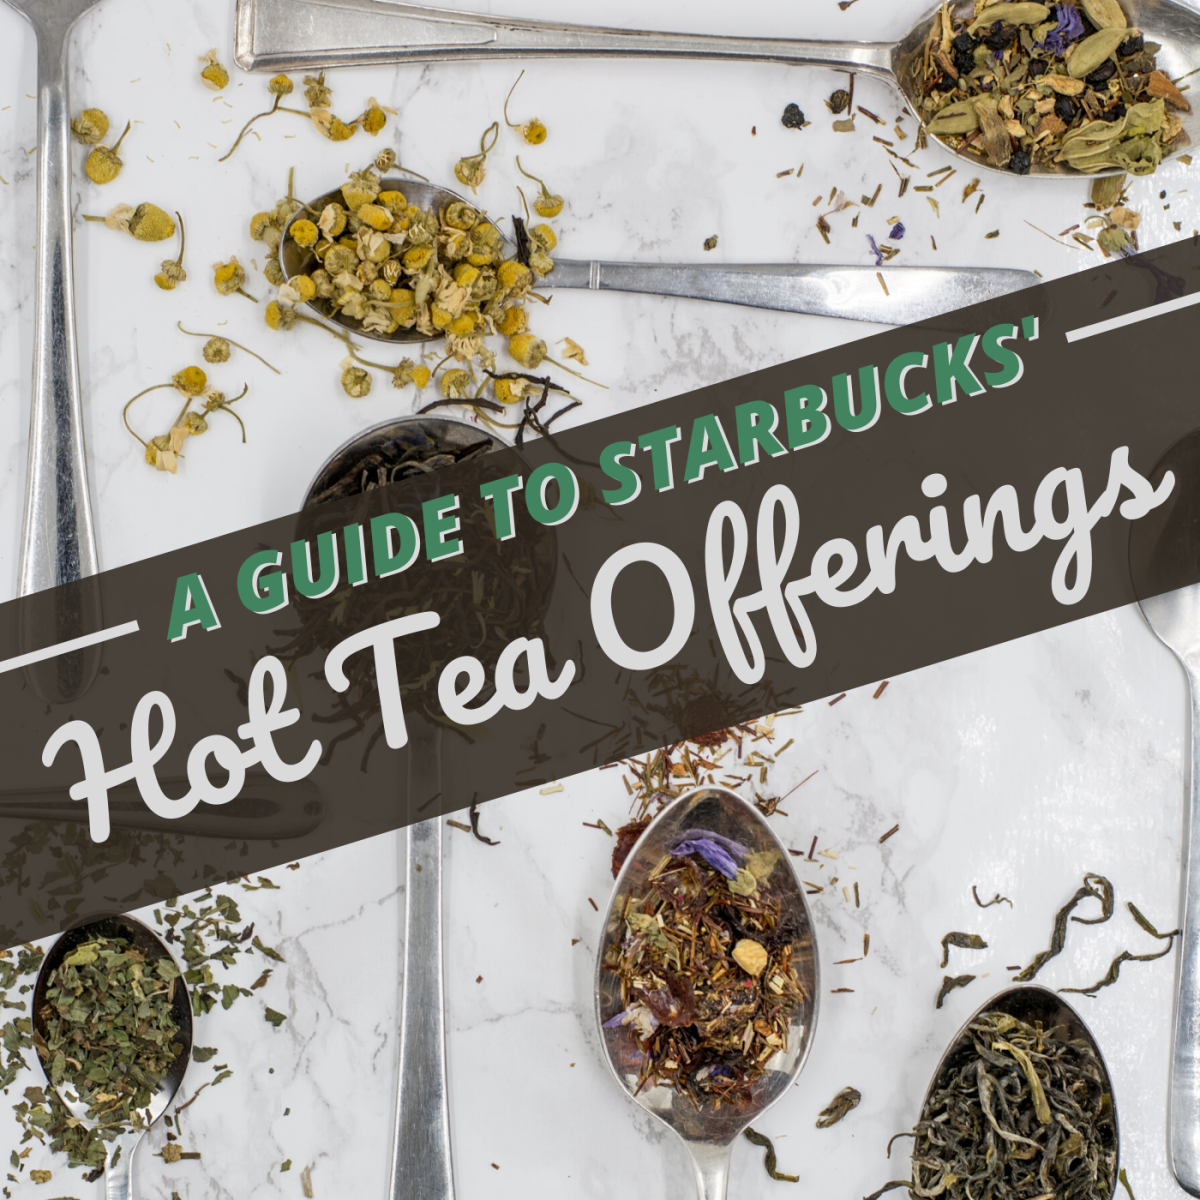 Here's everything you need to know about the Teavana hot teas offered by Starbucks on one page.